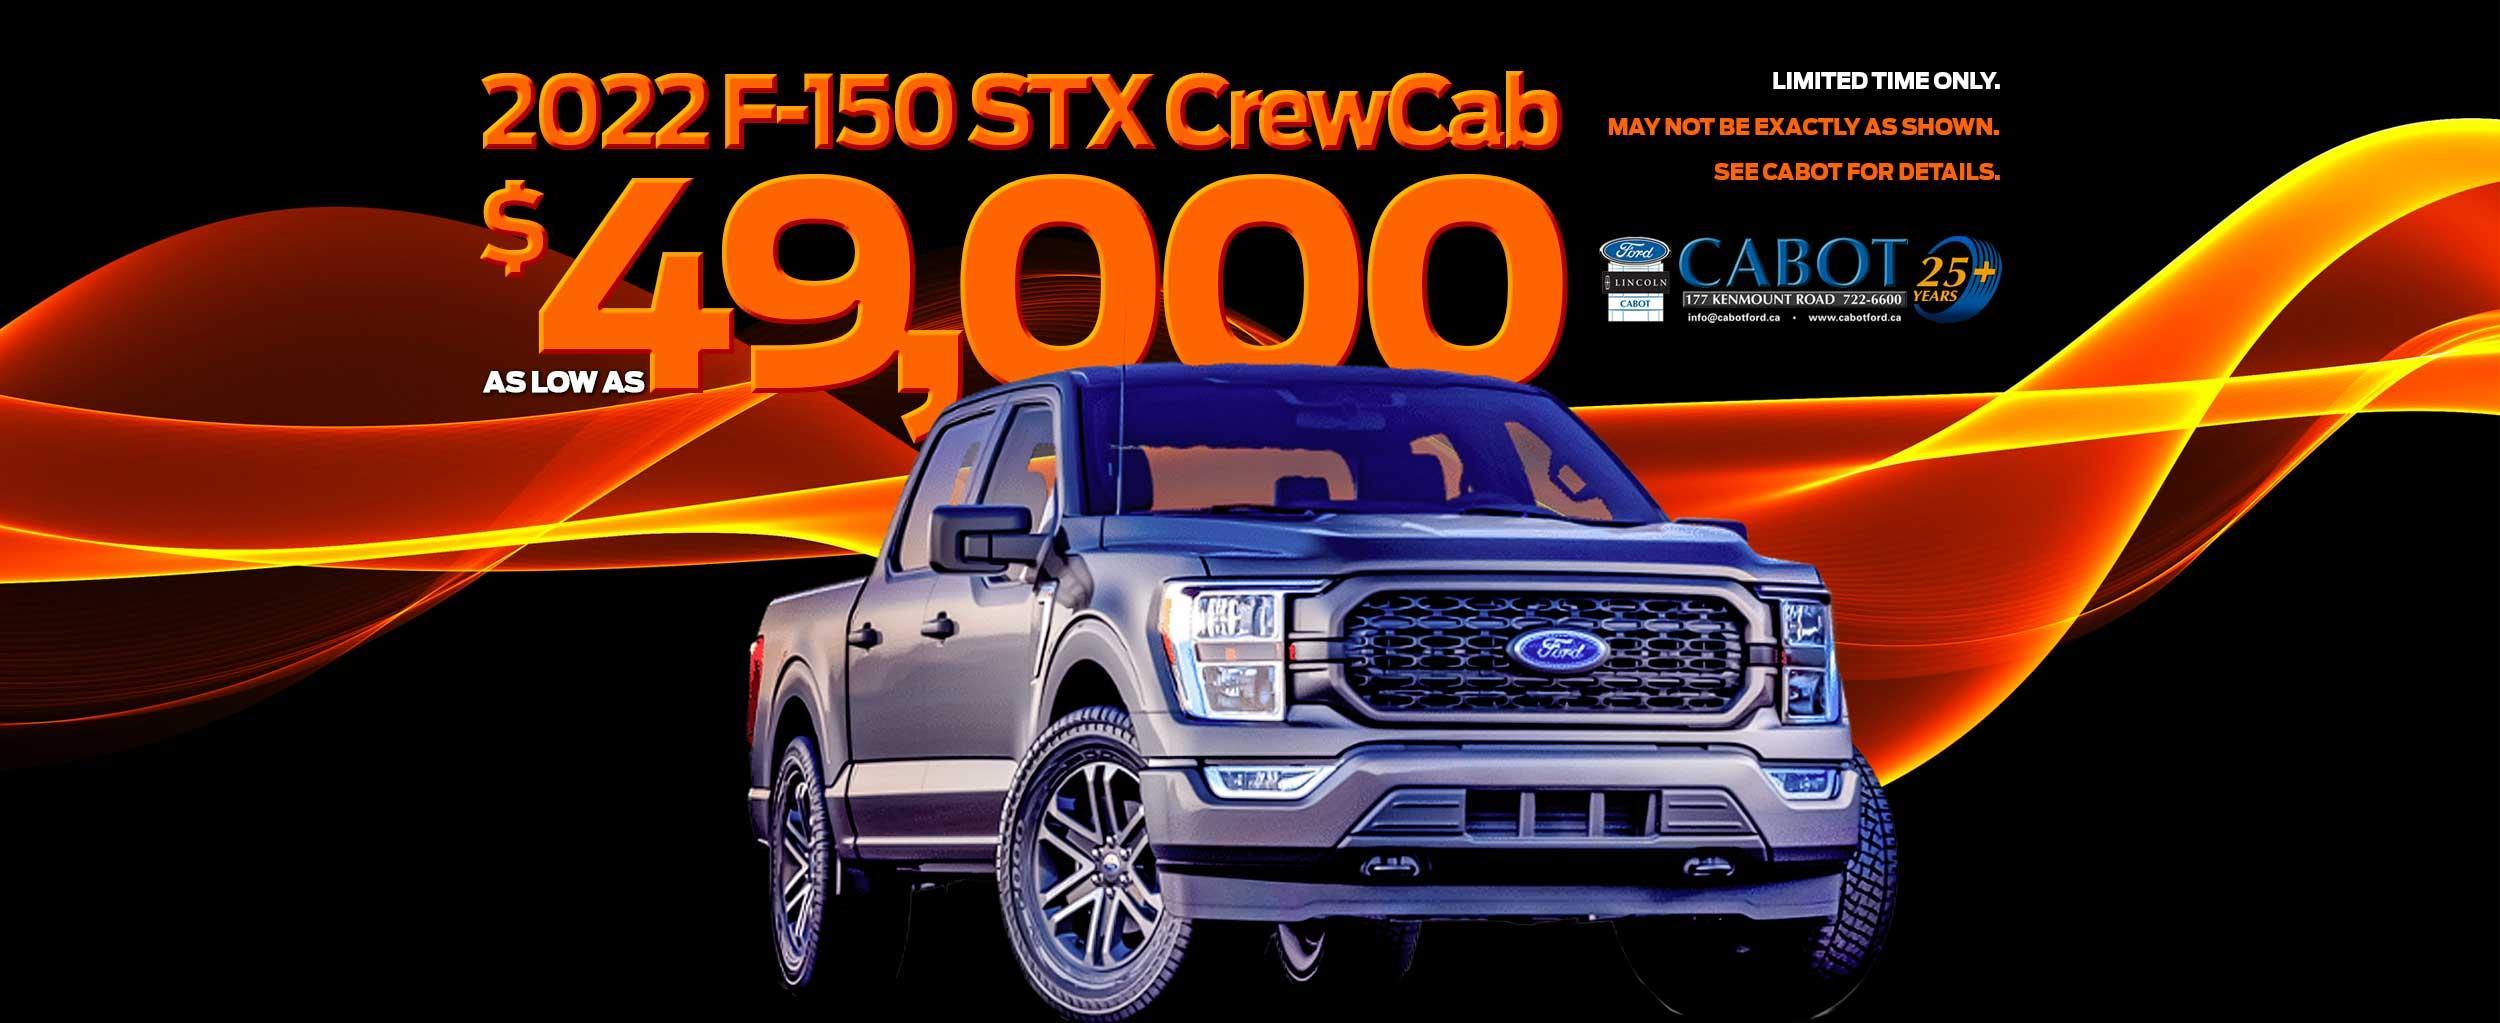 2022 F-150 STX Crewcab for as low as $49,000 + tax & fees!